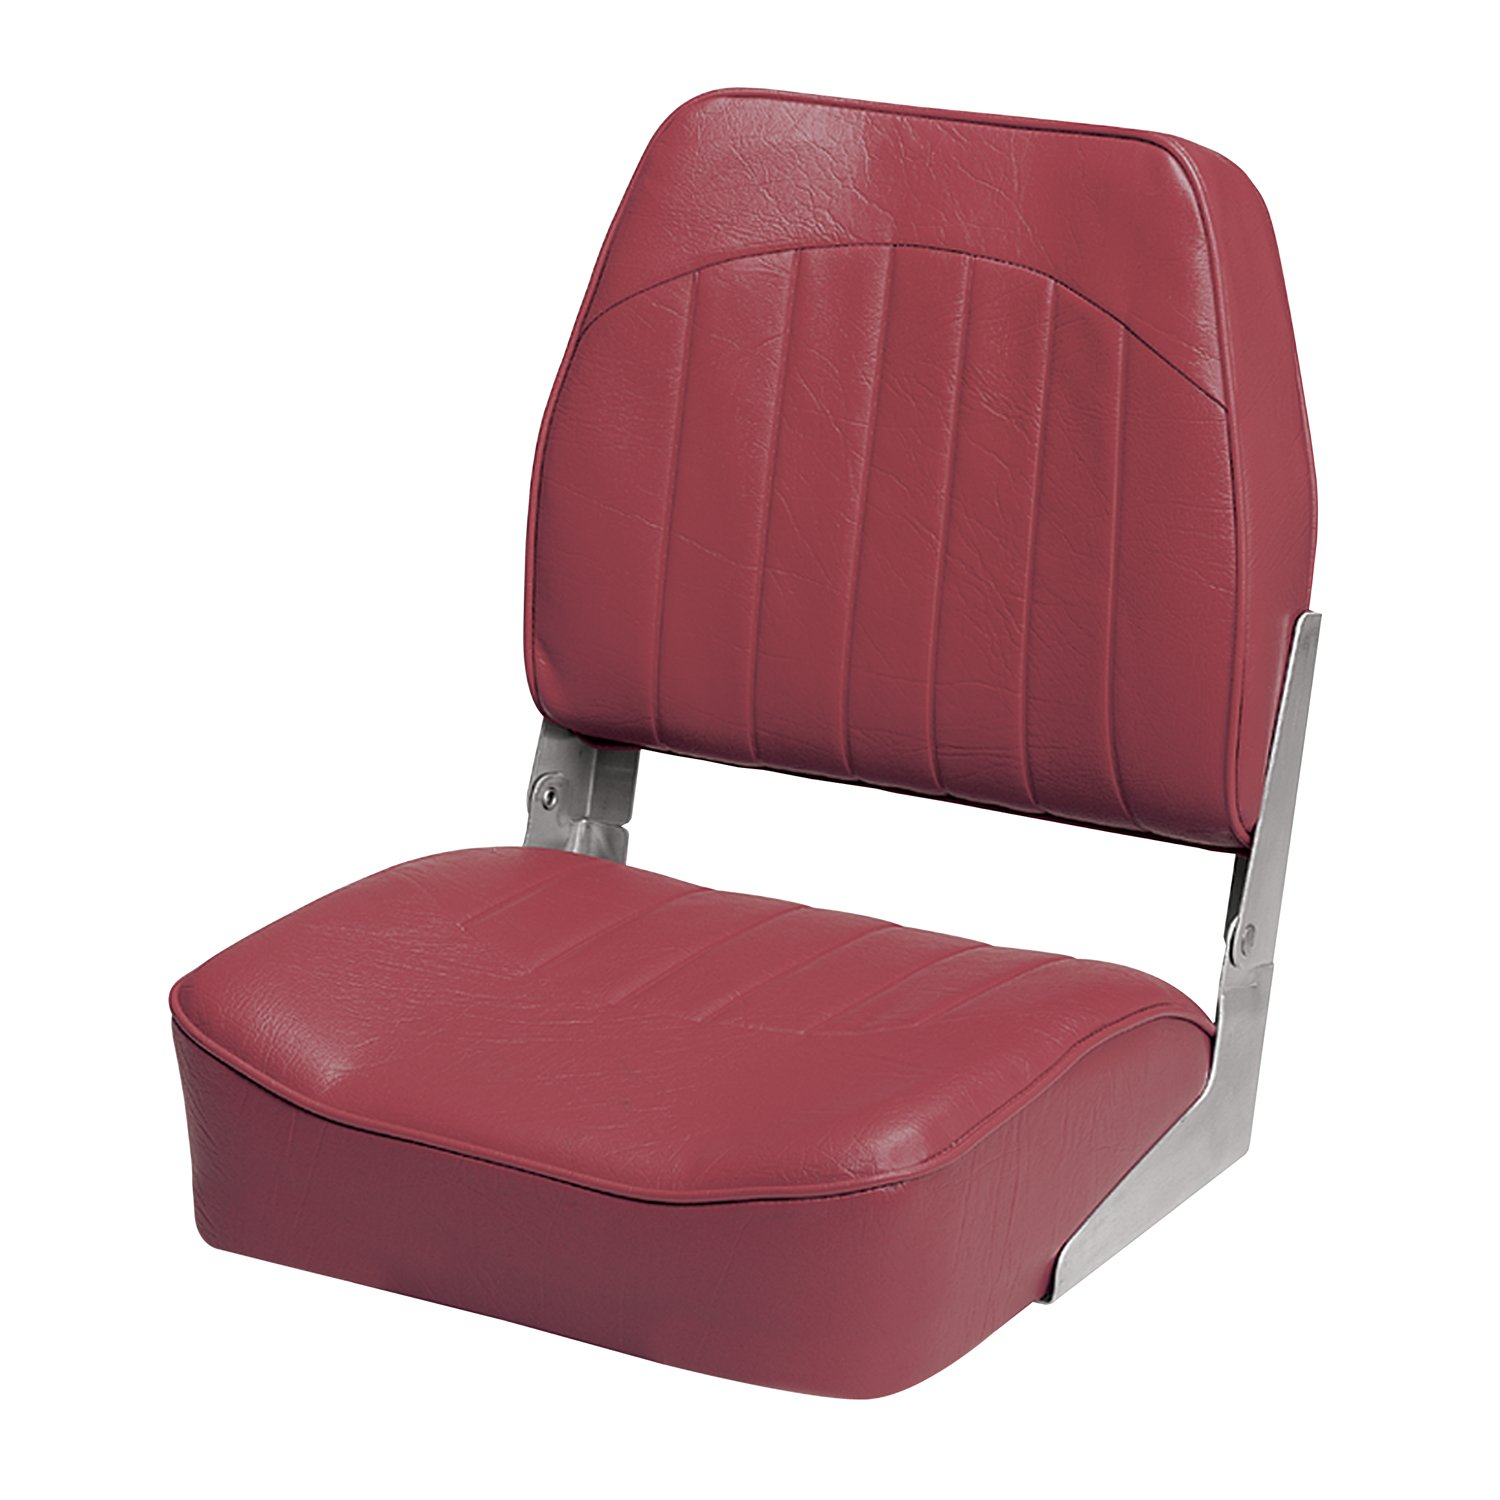 Wise 8WD734PLS-712 Low Back Boat Seat, Red